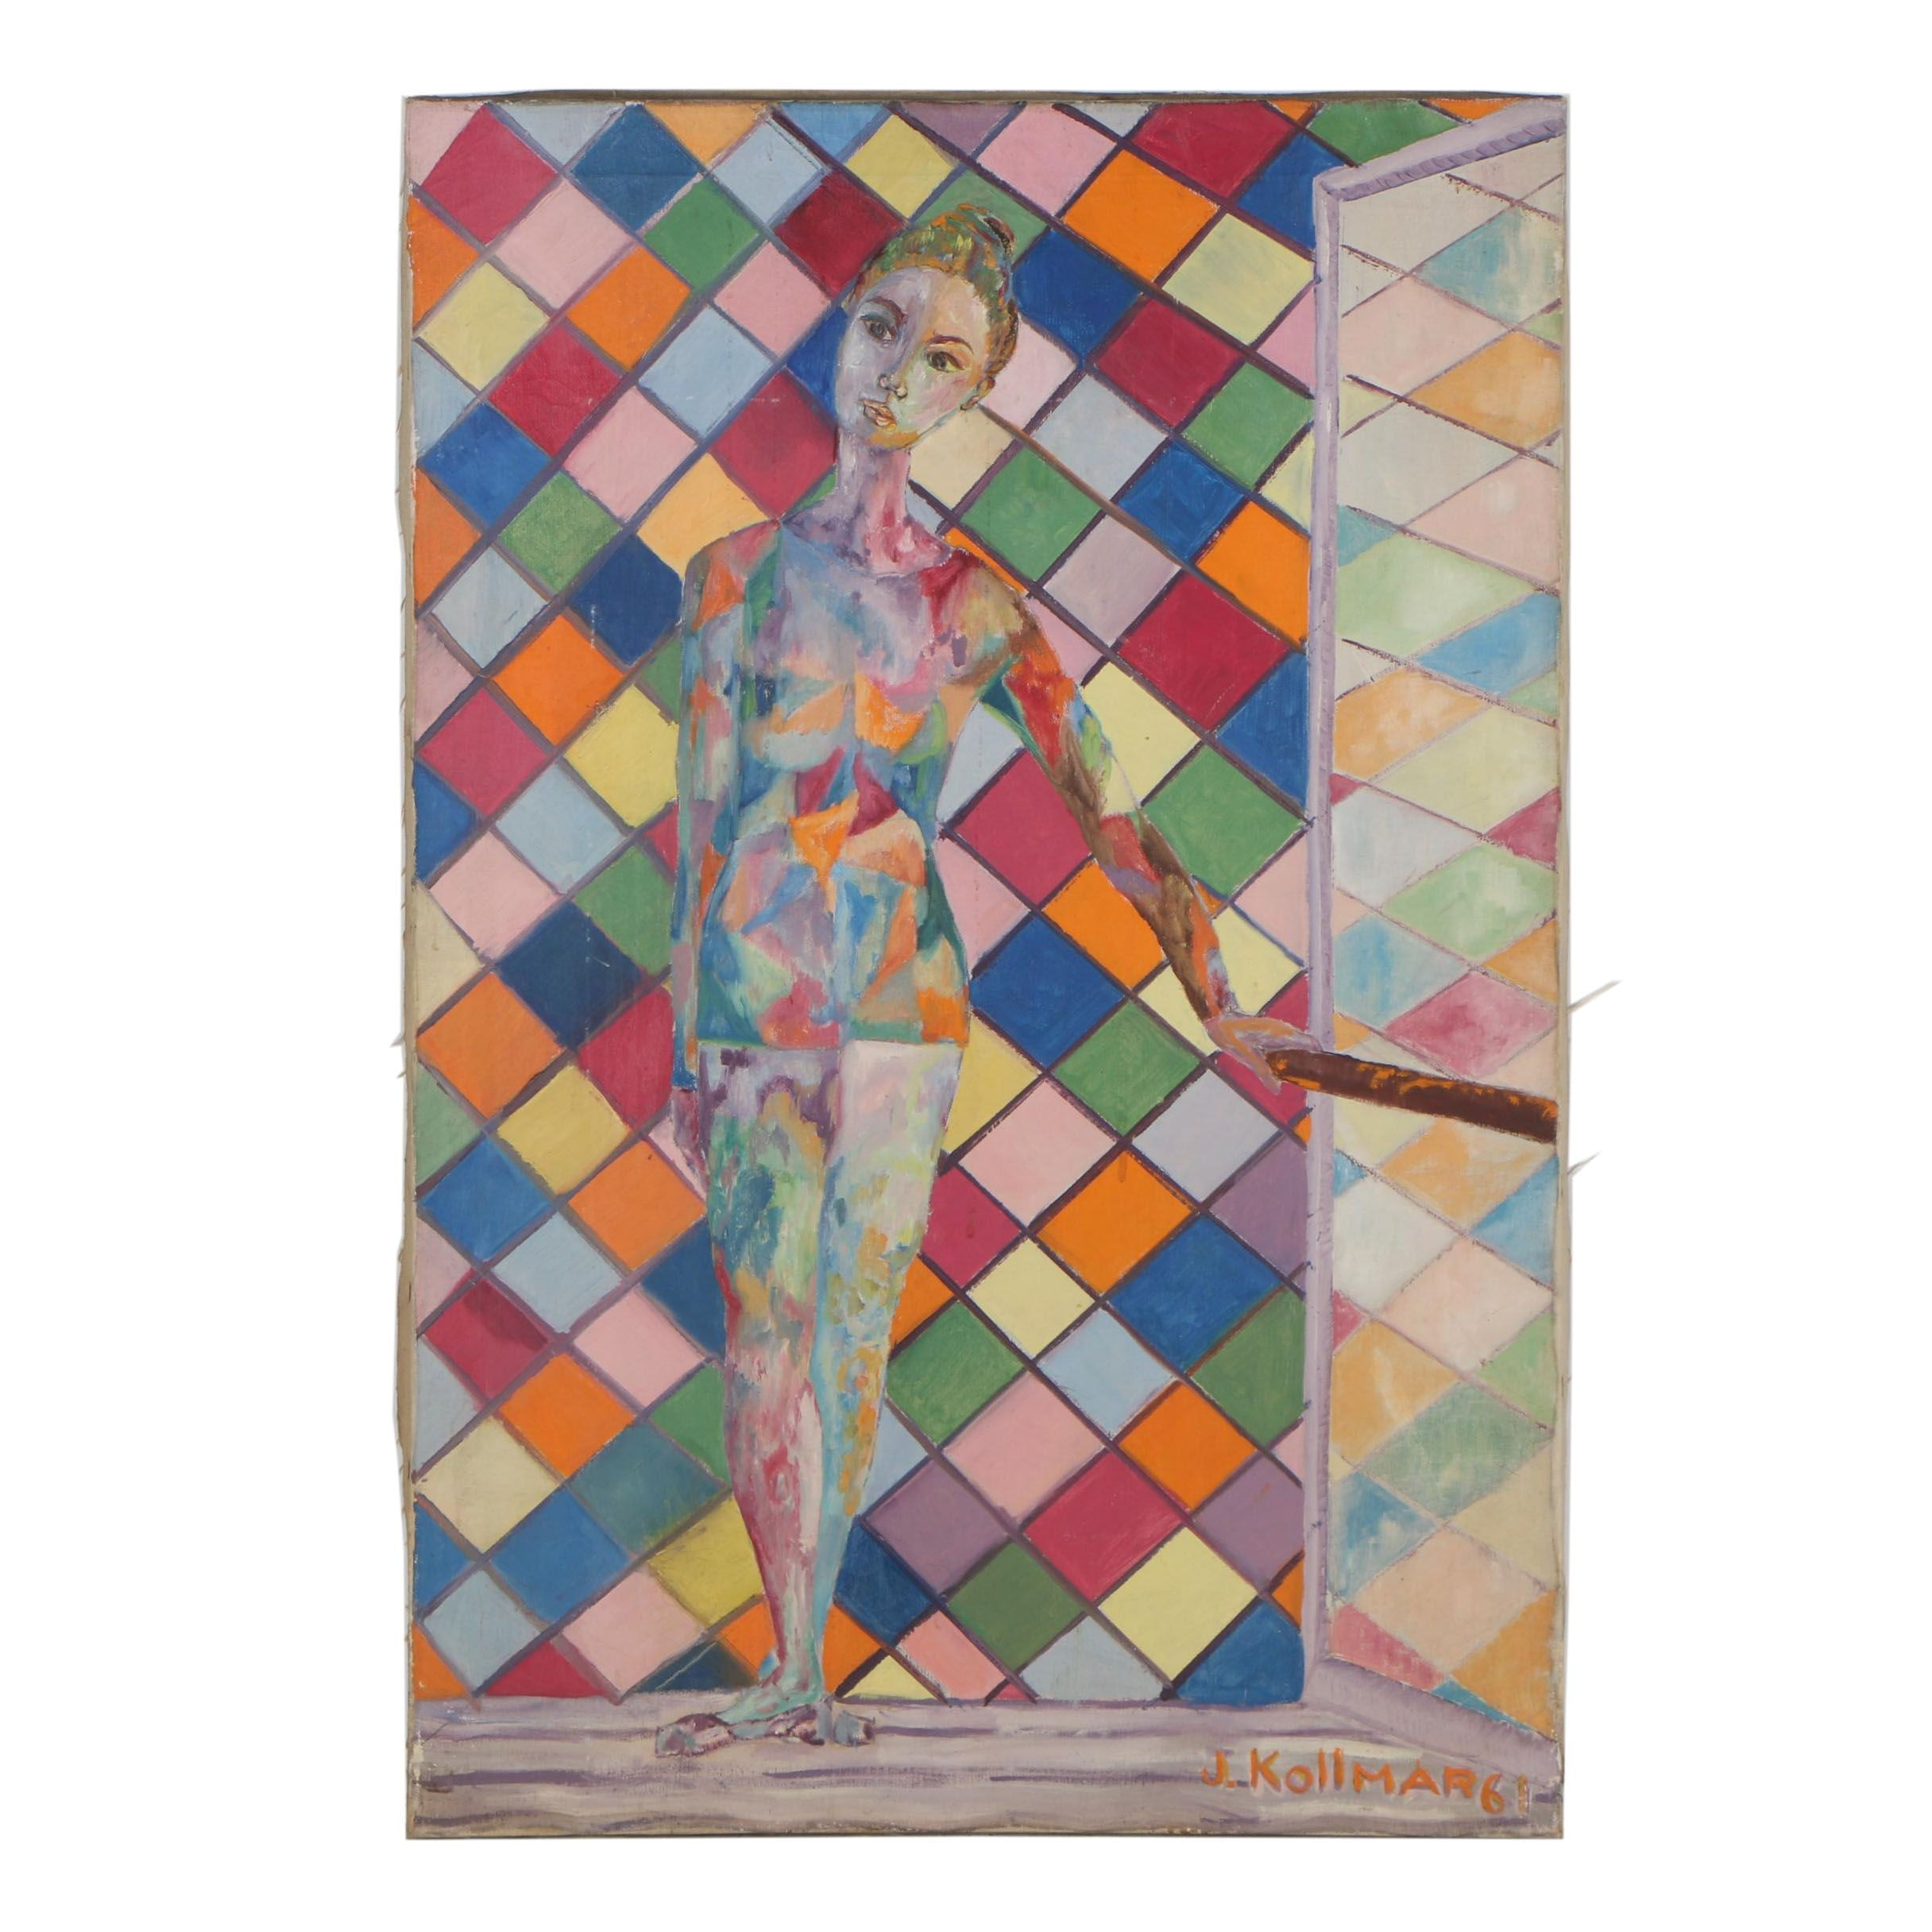 J. Kollmar Abstract Oil Painting of a Dancer